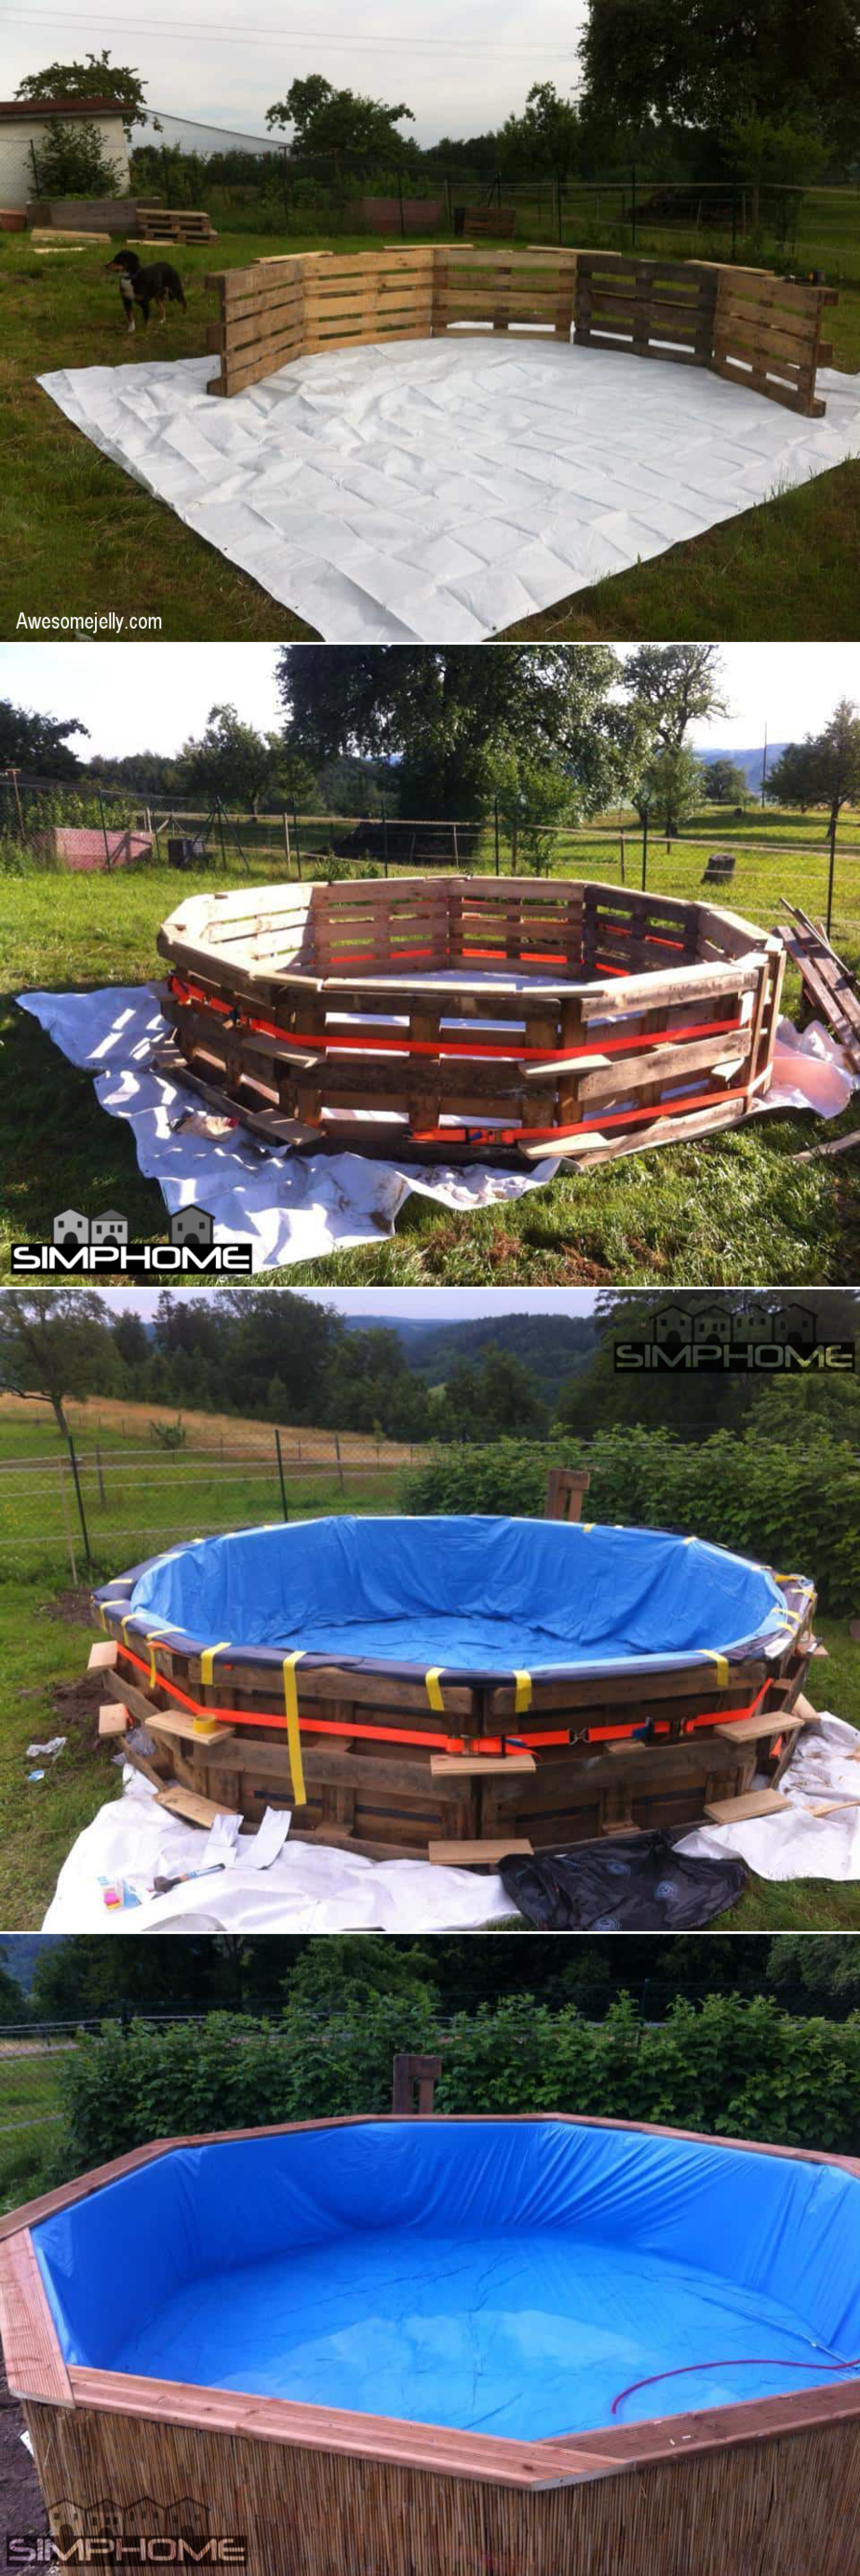 4.DIY Above Ground Pool from Wood Pallet via Simphome.com